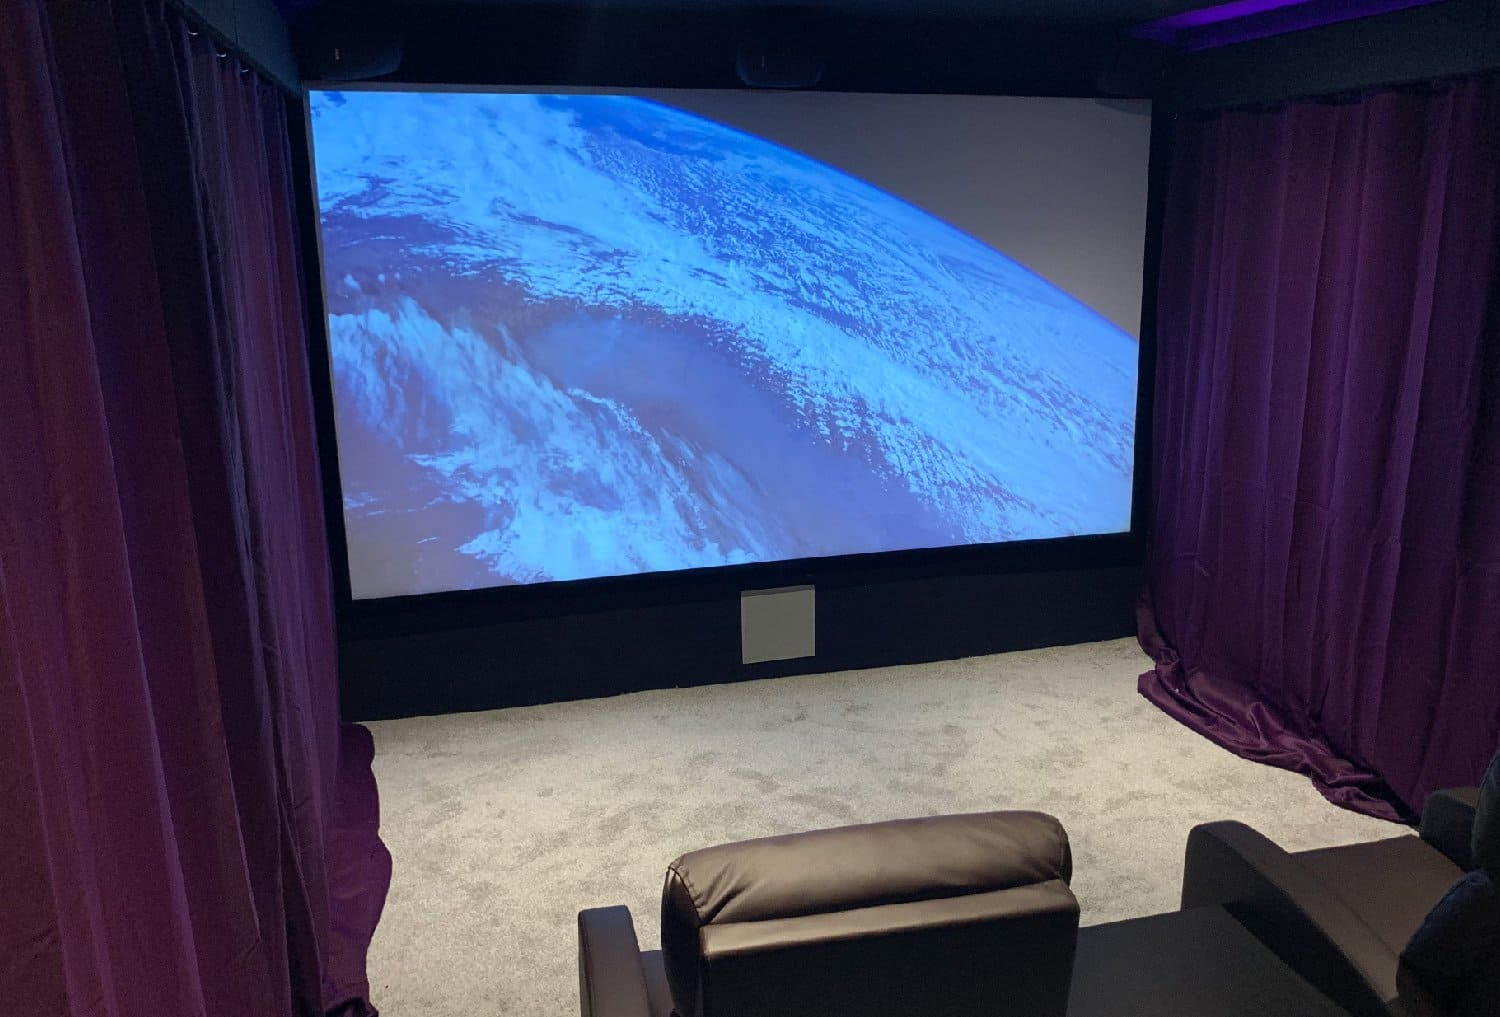 Home Cinema System Installation by CatonLloyd